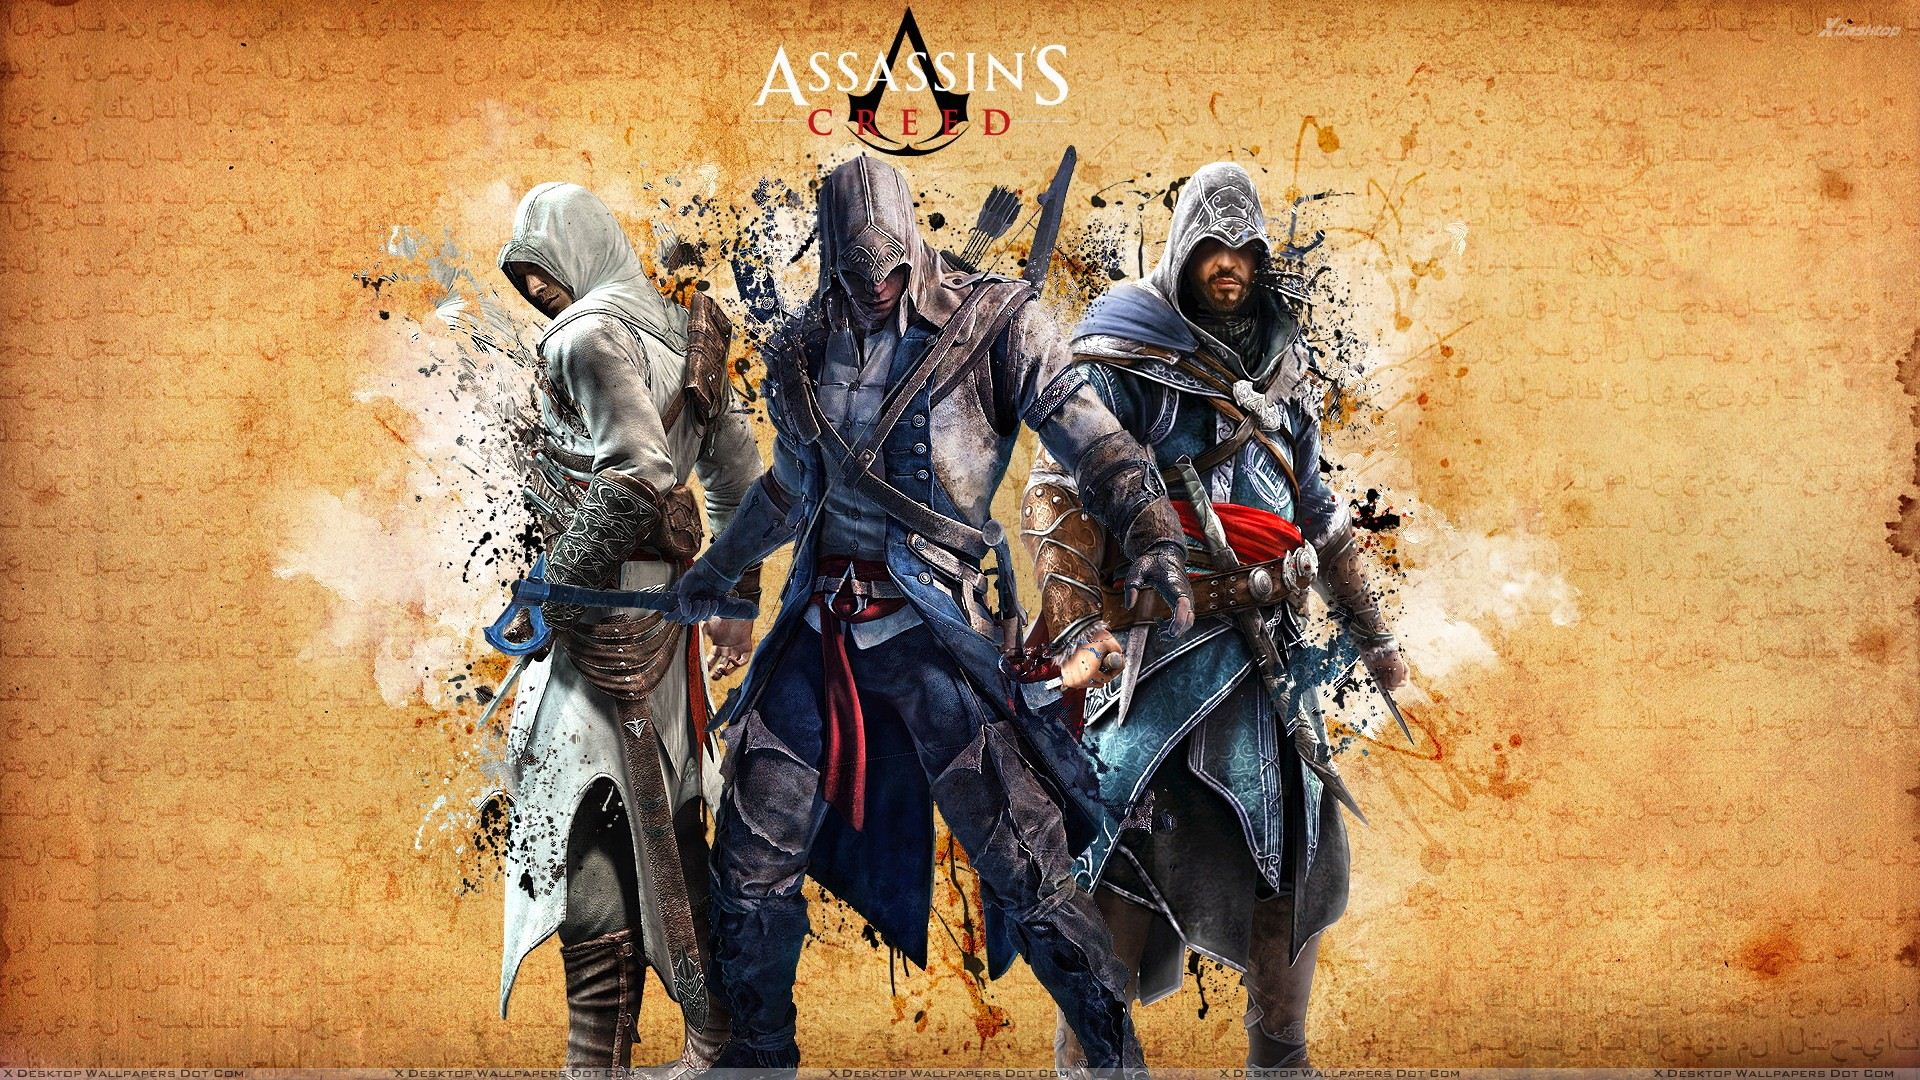 Free Download Assassins Creed All Characters Wallpaper 1920x1080